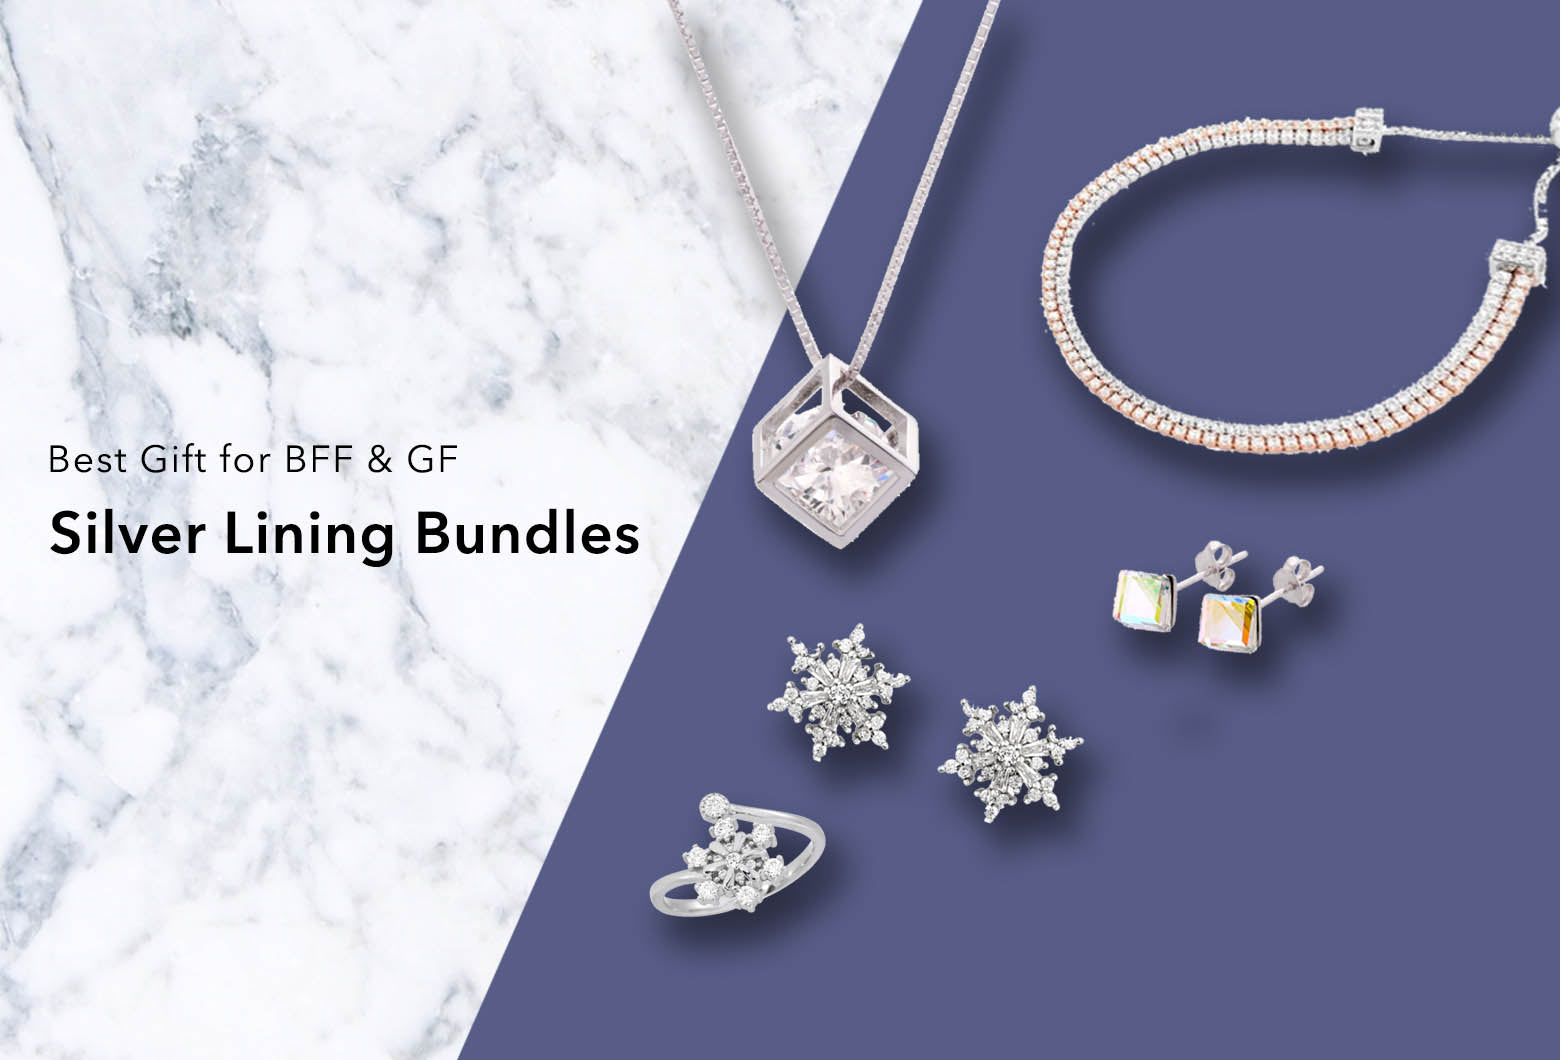 Silver Lining Bundles - Best Gift for BFF & GF | Blue Edges Co. | Nordic Contemporary Marble Fashion | Minimal Uniqueness | Reinvent your Collection